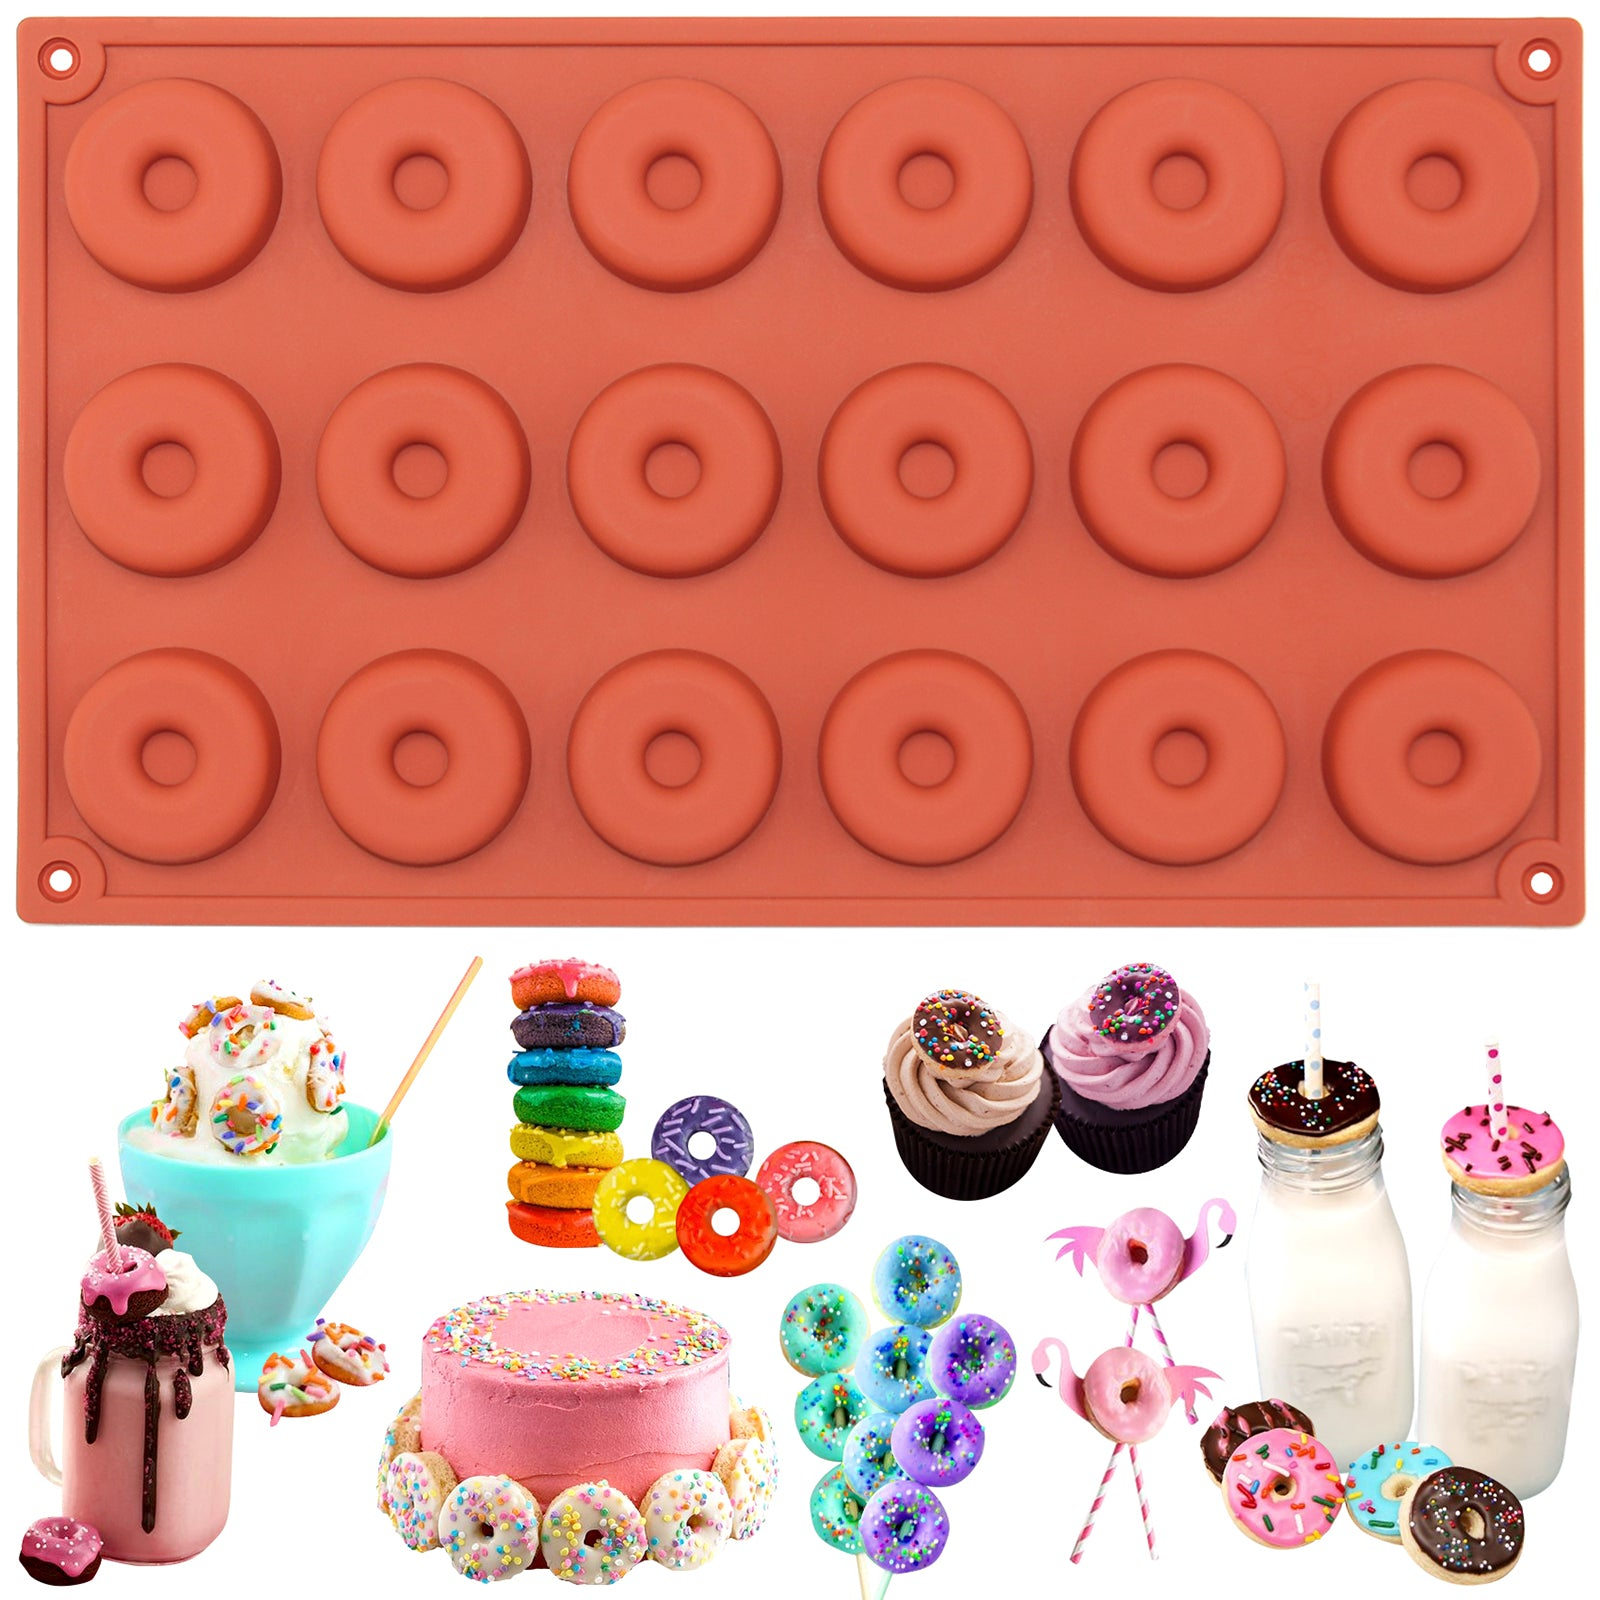 Mini Donut Silicone Mold 18-Cavity